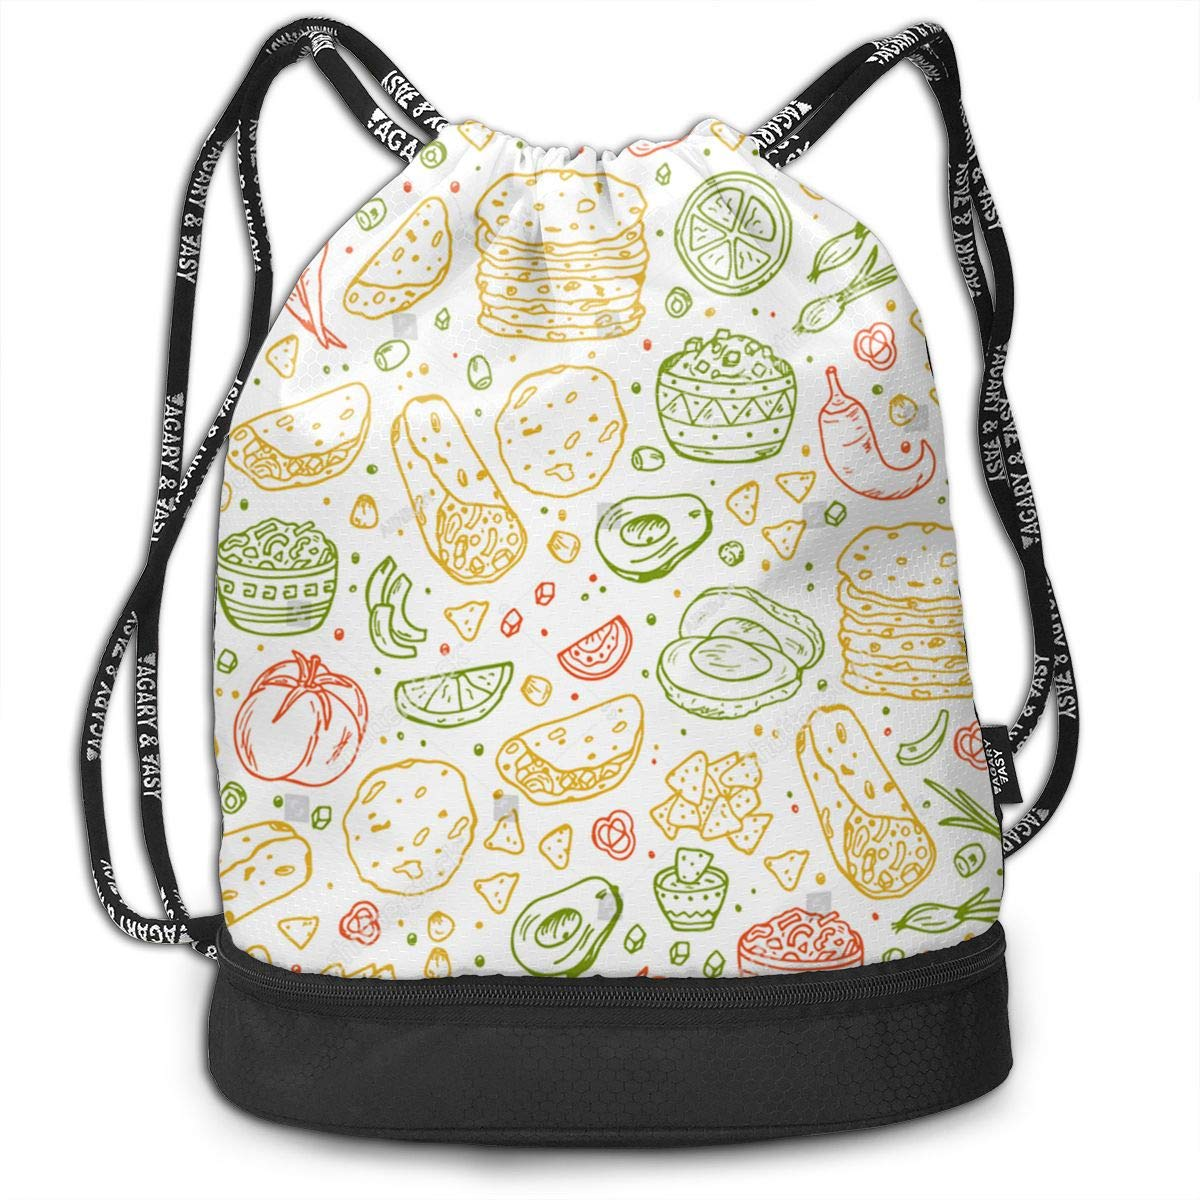 HUOPR5Q Mexican-Tradition-Food Drawstring Backpack Sport Gym Sack Shoulder Bulk Bag Dance Bag for School Travel